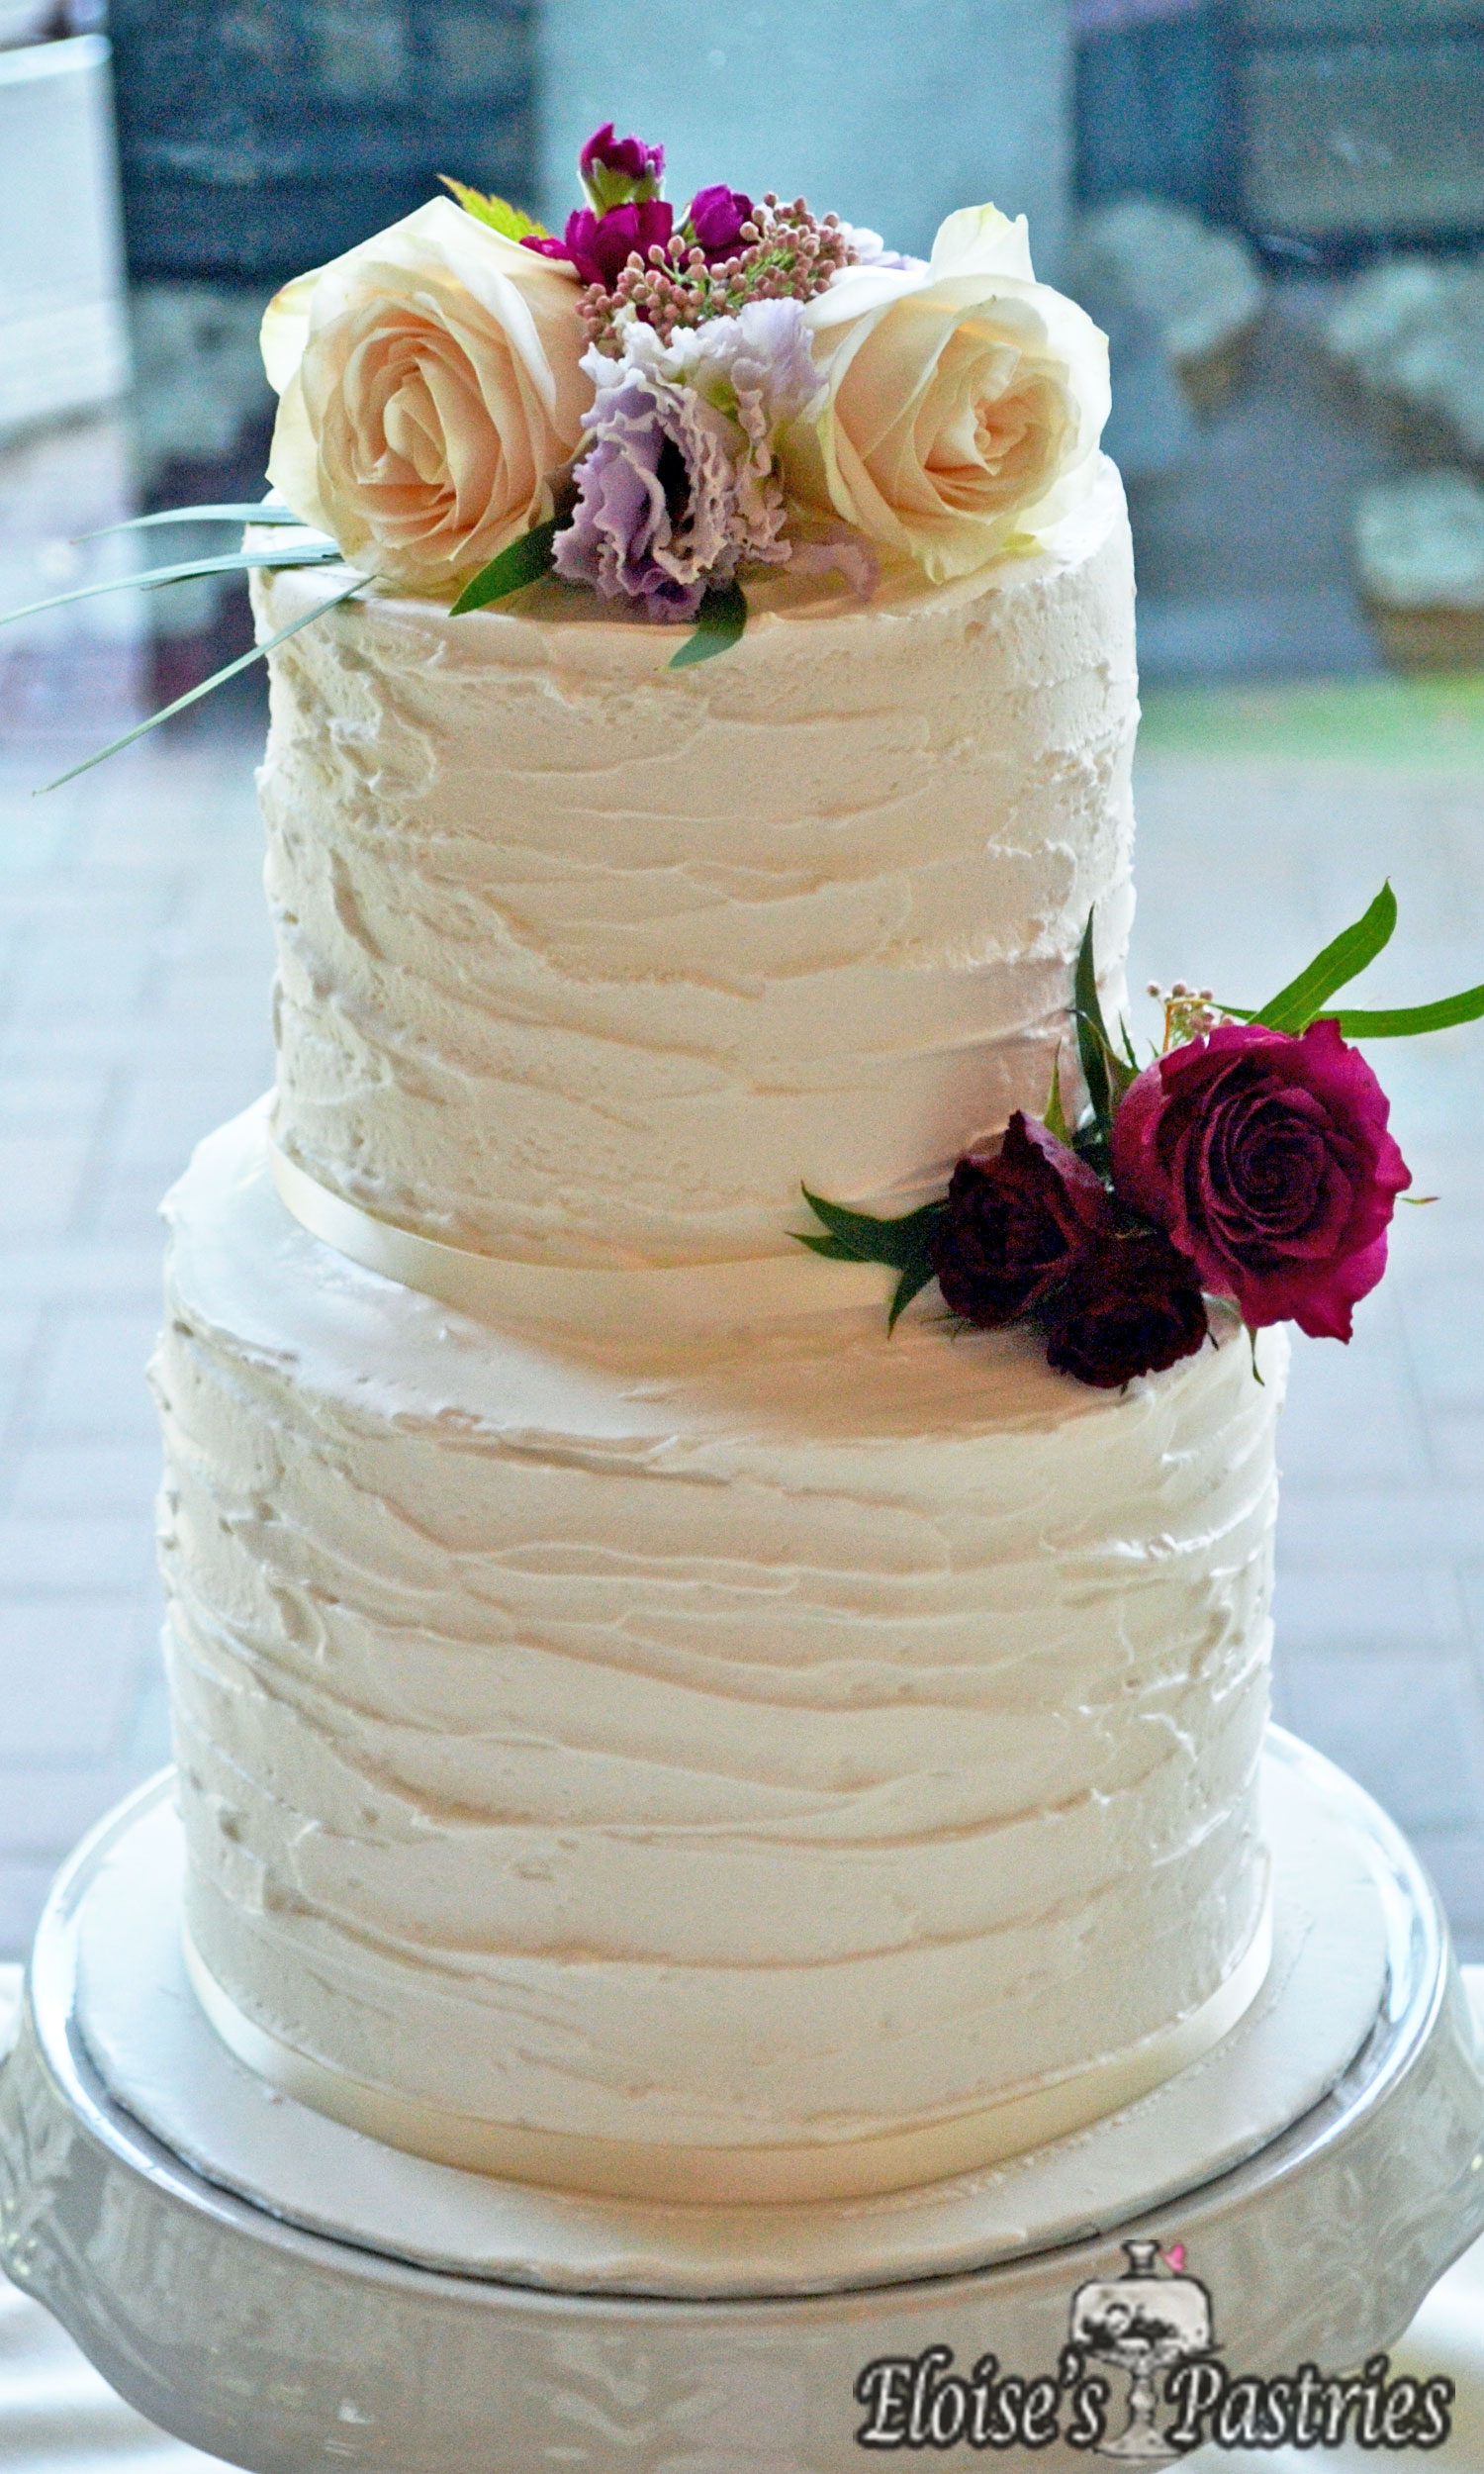 Simple and Classic Buttercream Wedding Cake with Flowers